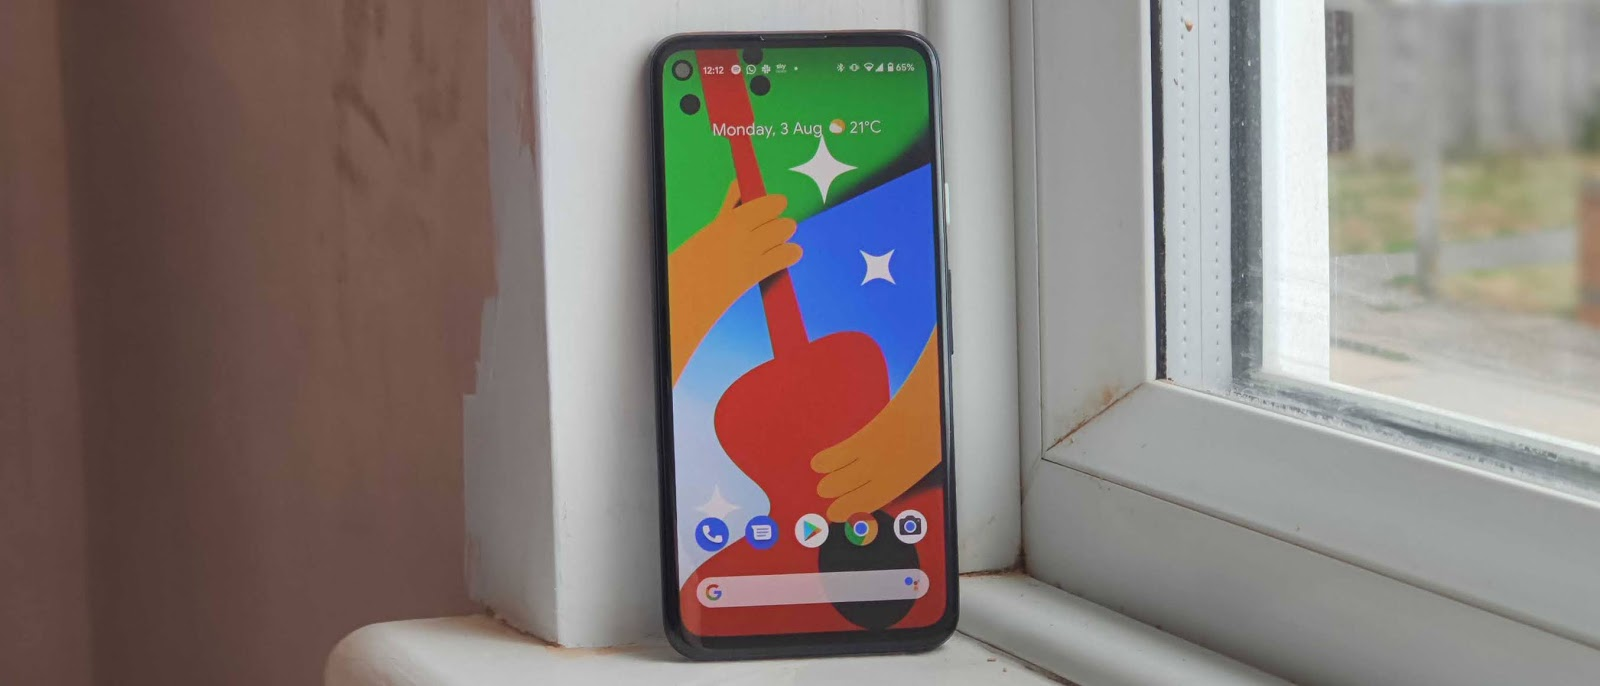 Google Pixel 4a pre-orders are available in These 8 more countries